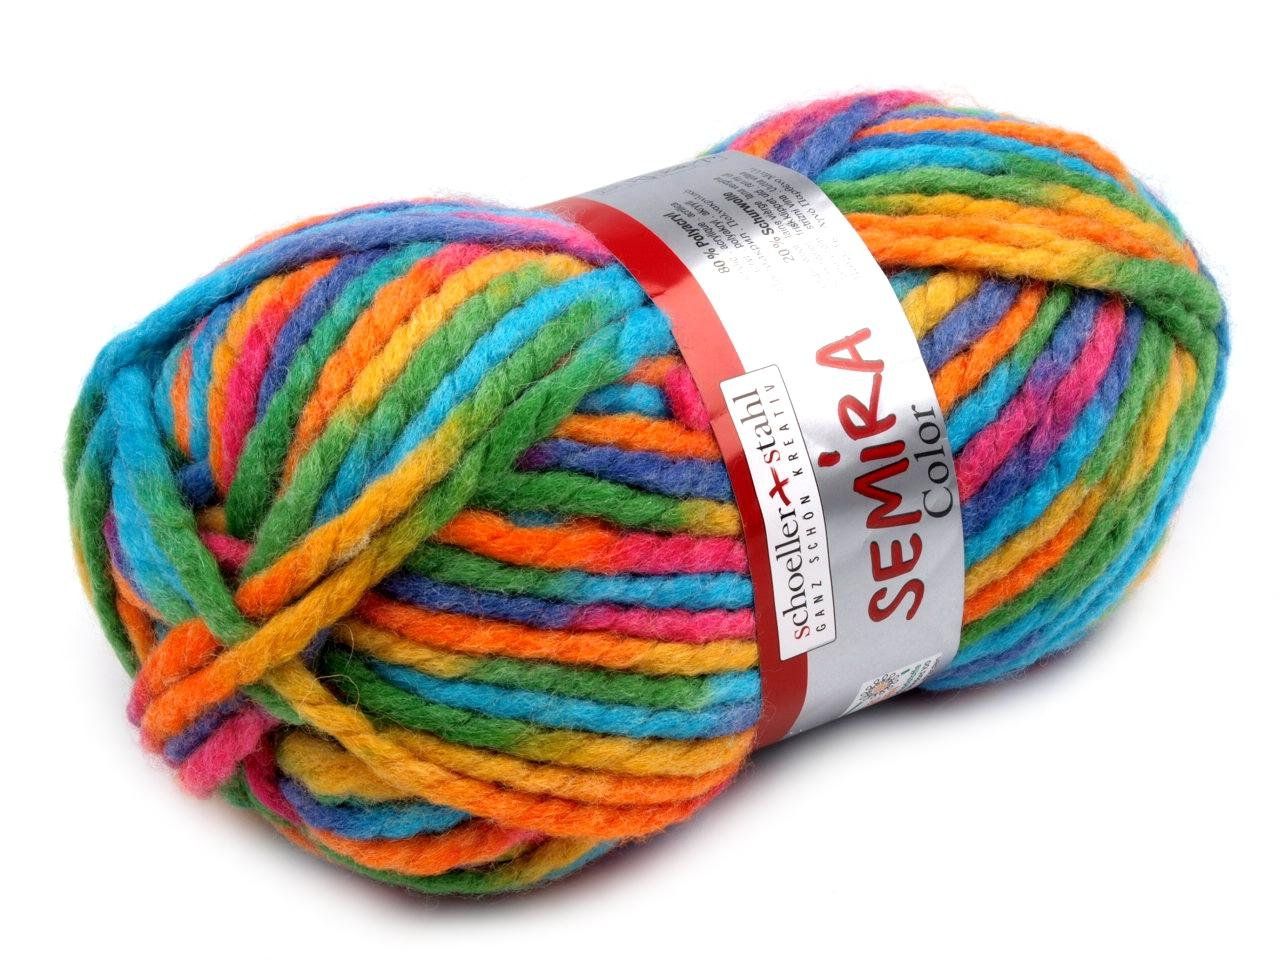 Semira color - multicolored